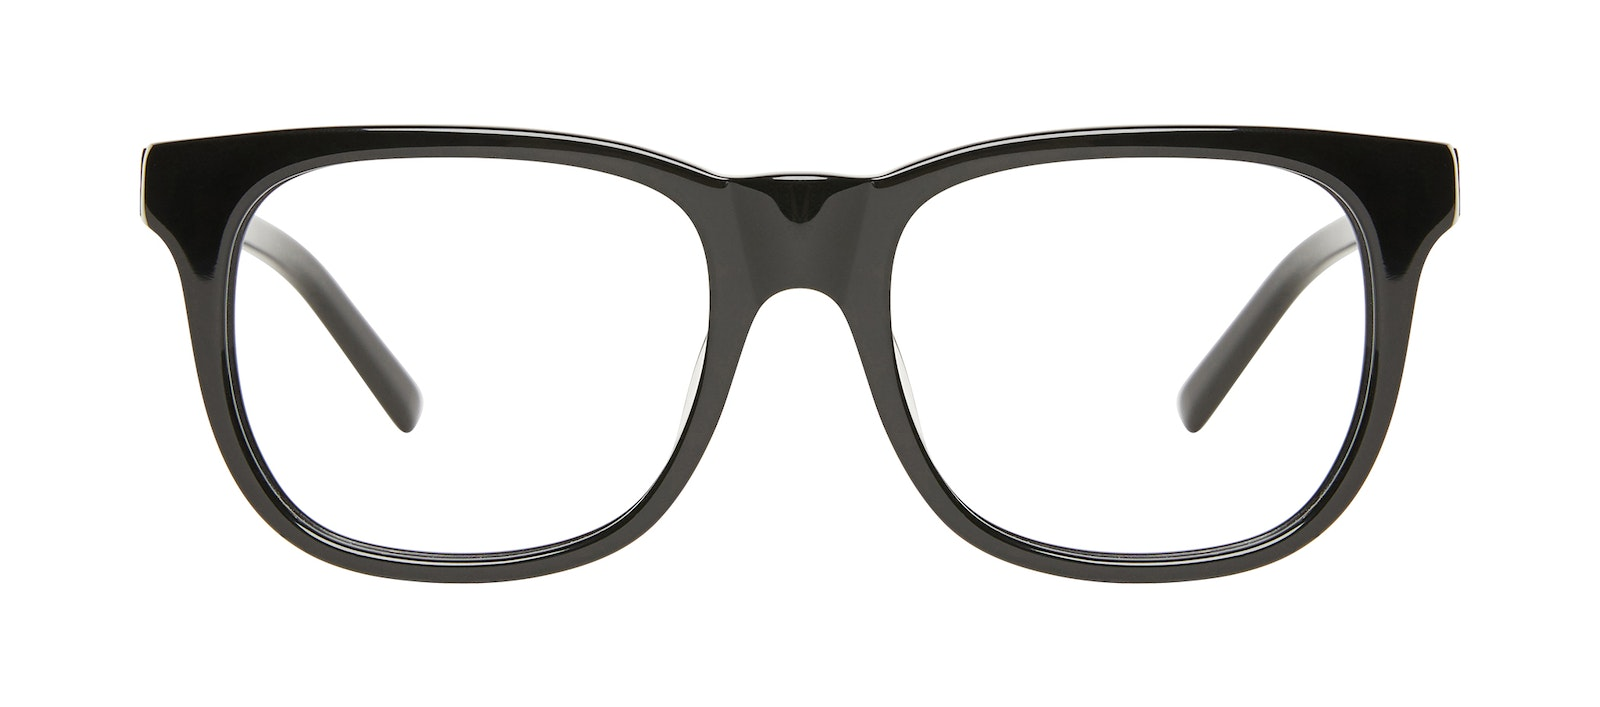 Affordable Fashion Glasses Square Eyeglasses Men Solo Black Front